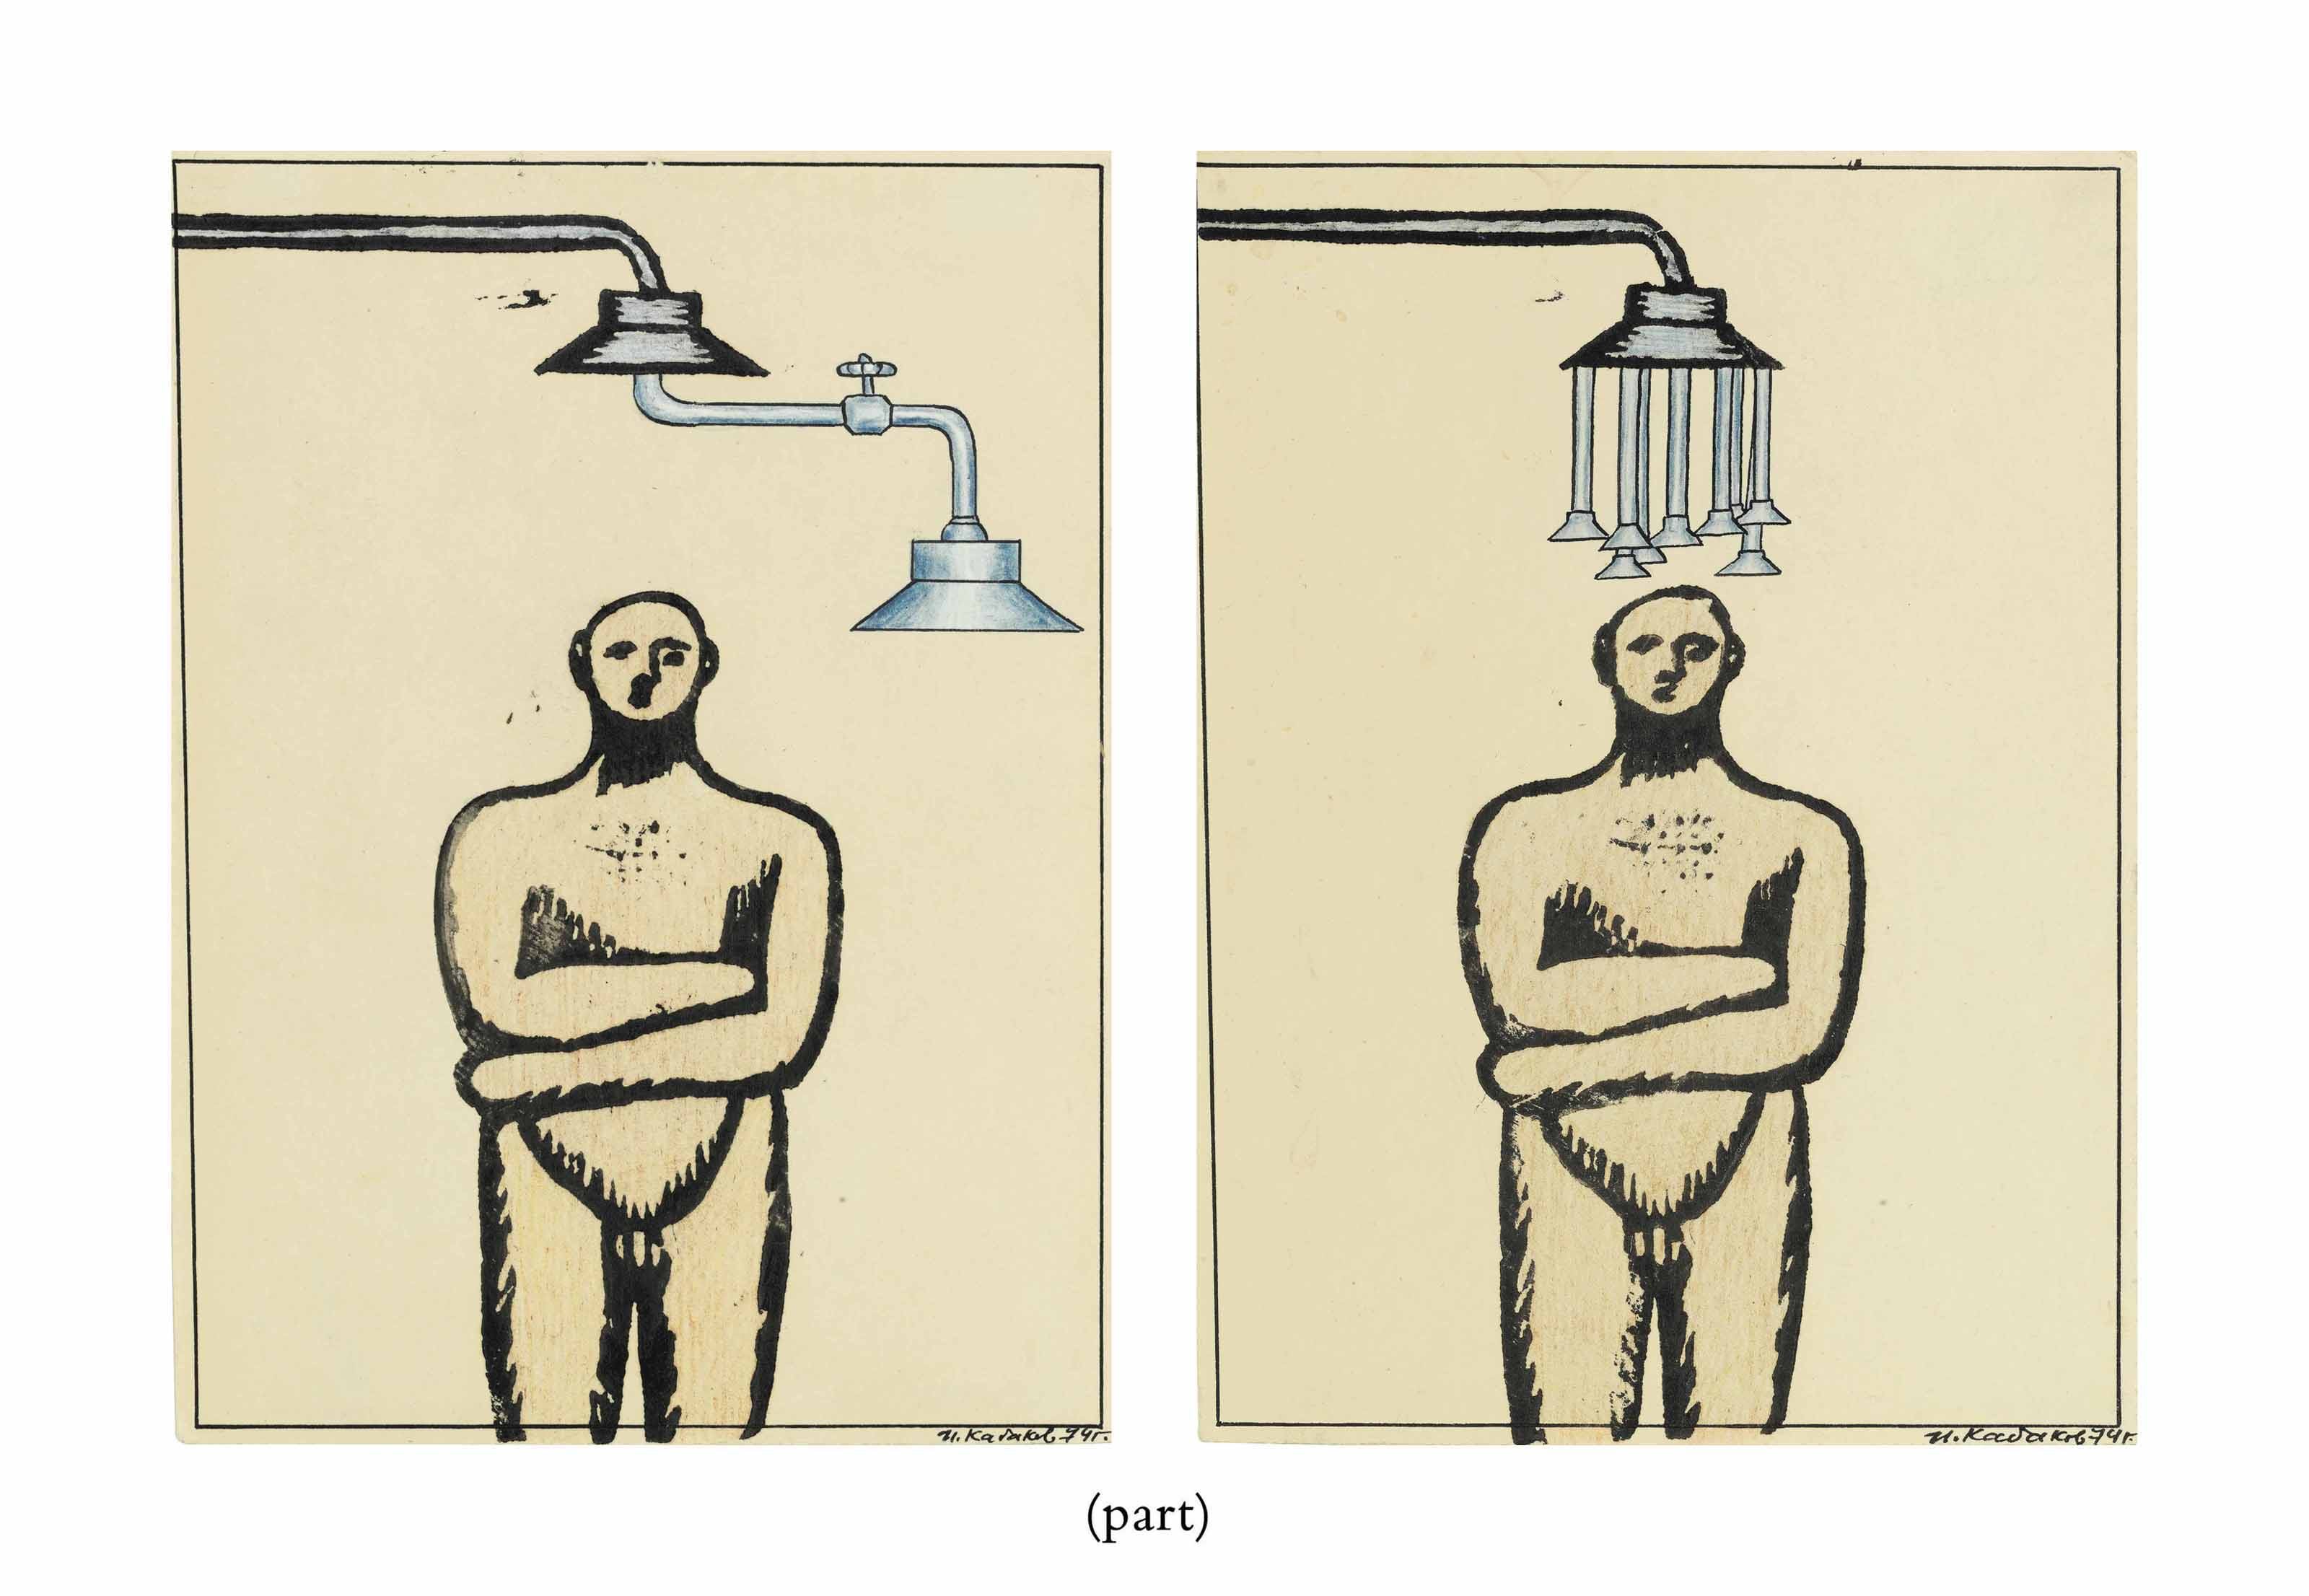 Two drawings from the Man under the shower series